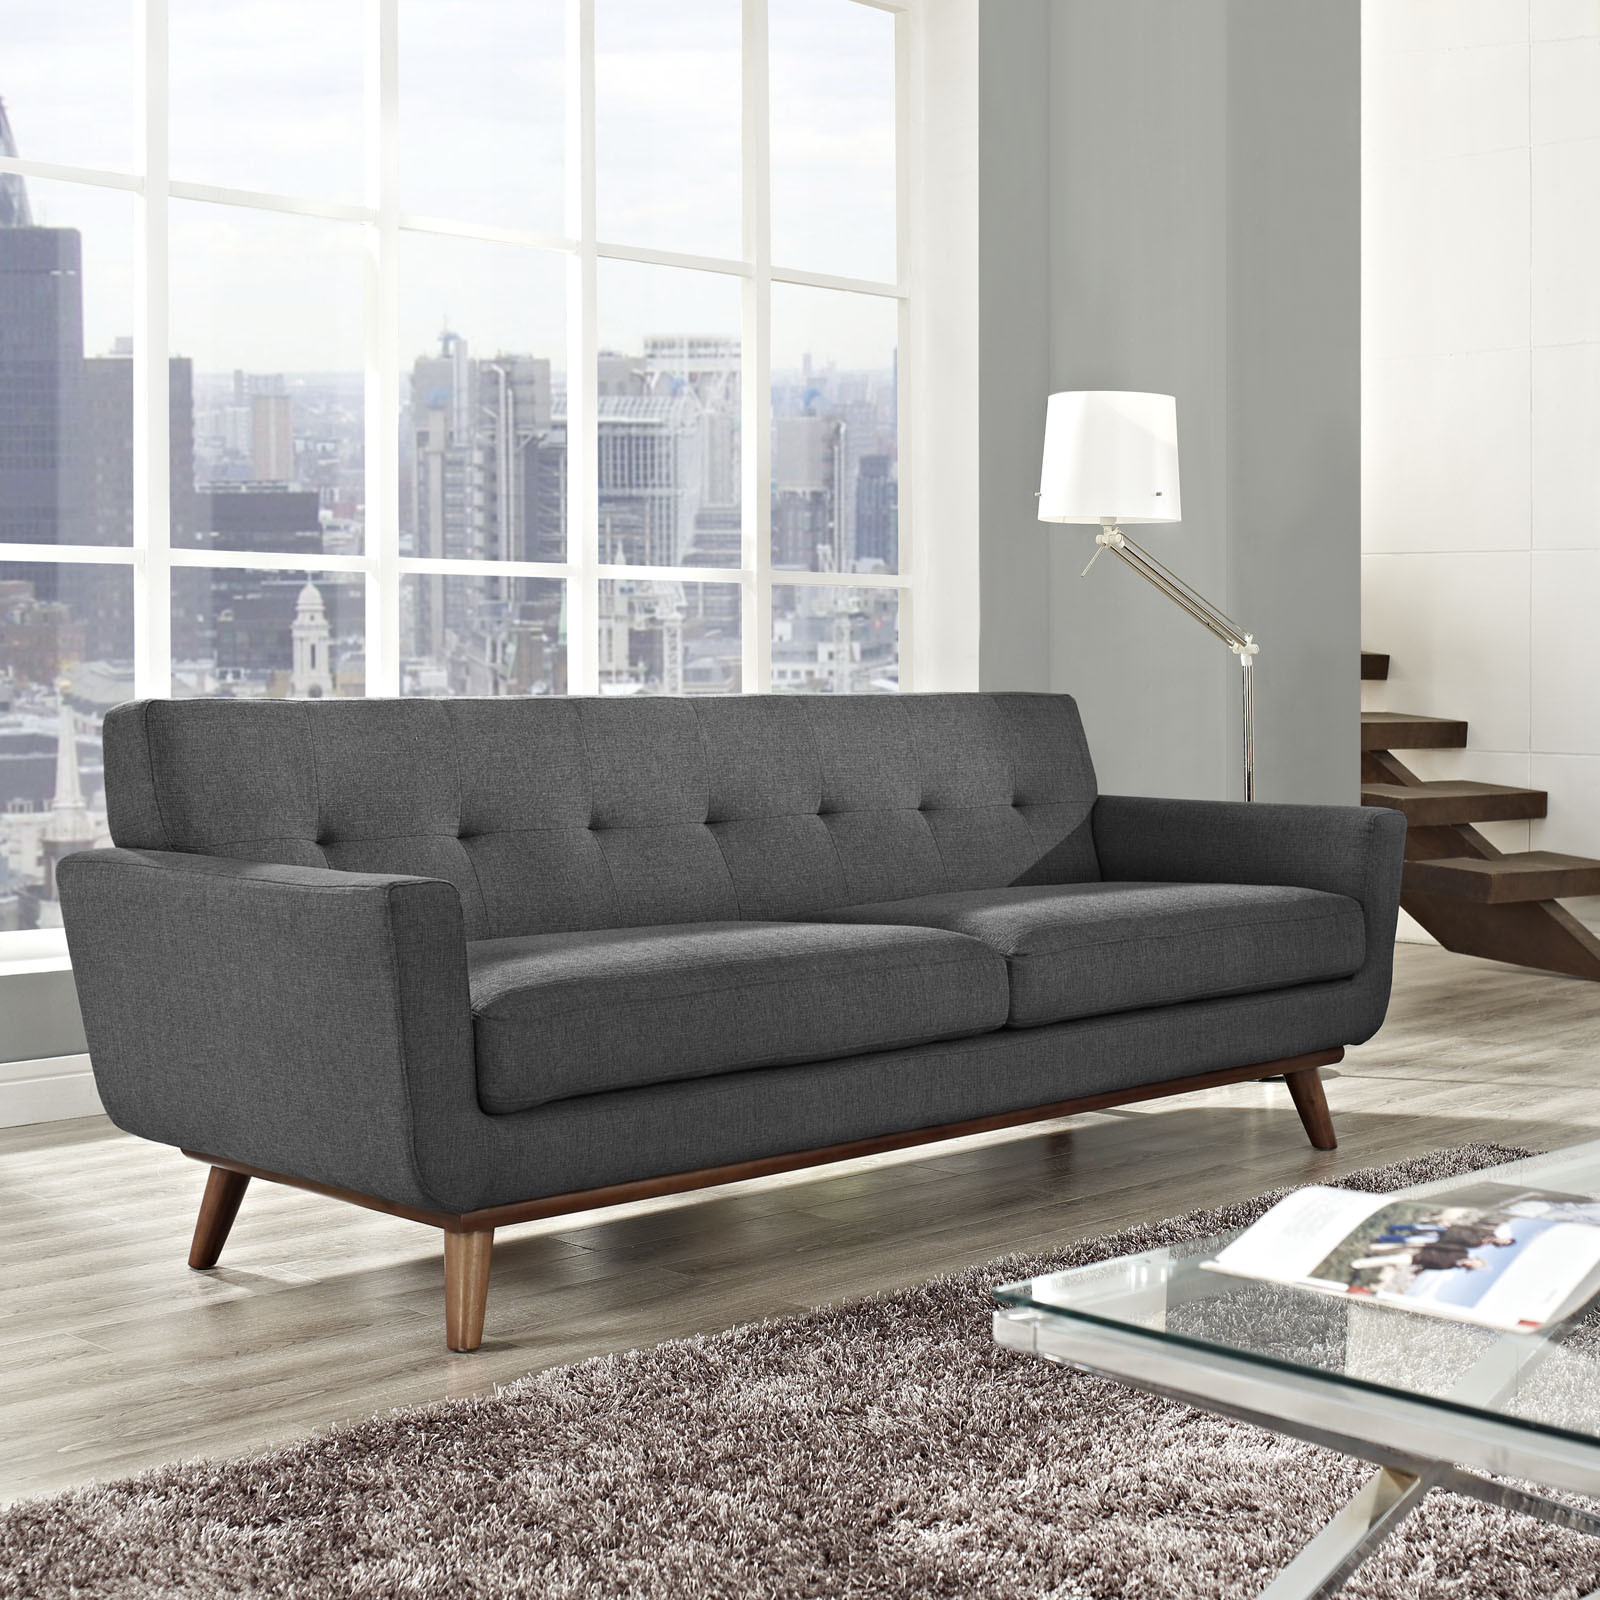 ferguson copeland leather sofa large double clic clac bed 5 couch styles for your living room from boho to industrial